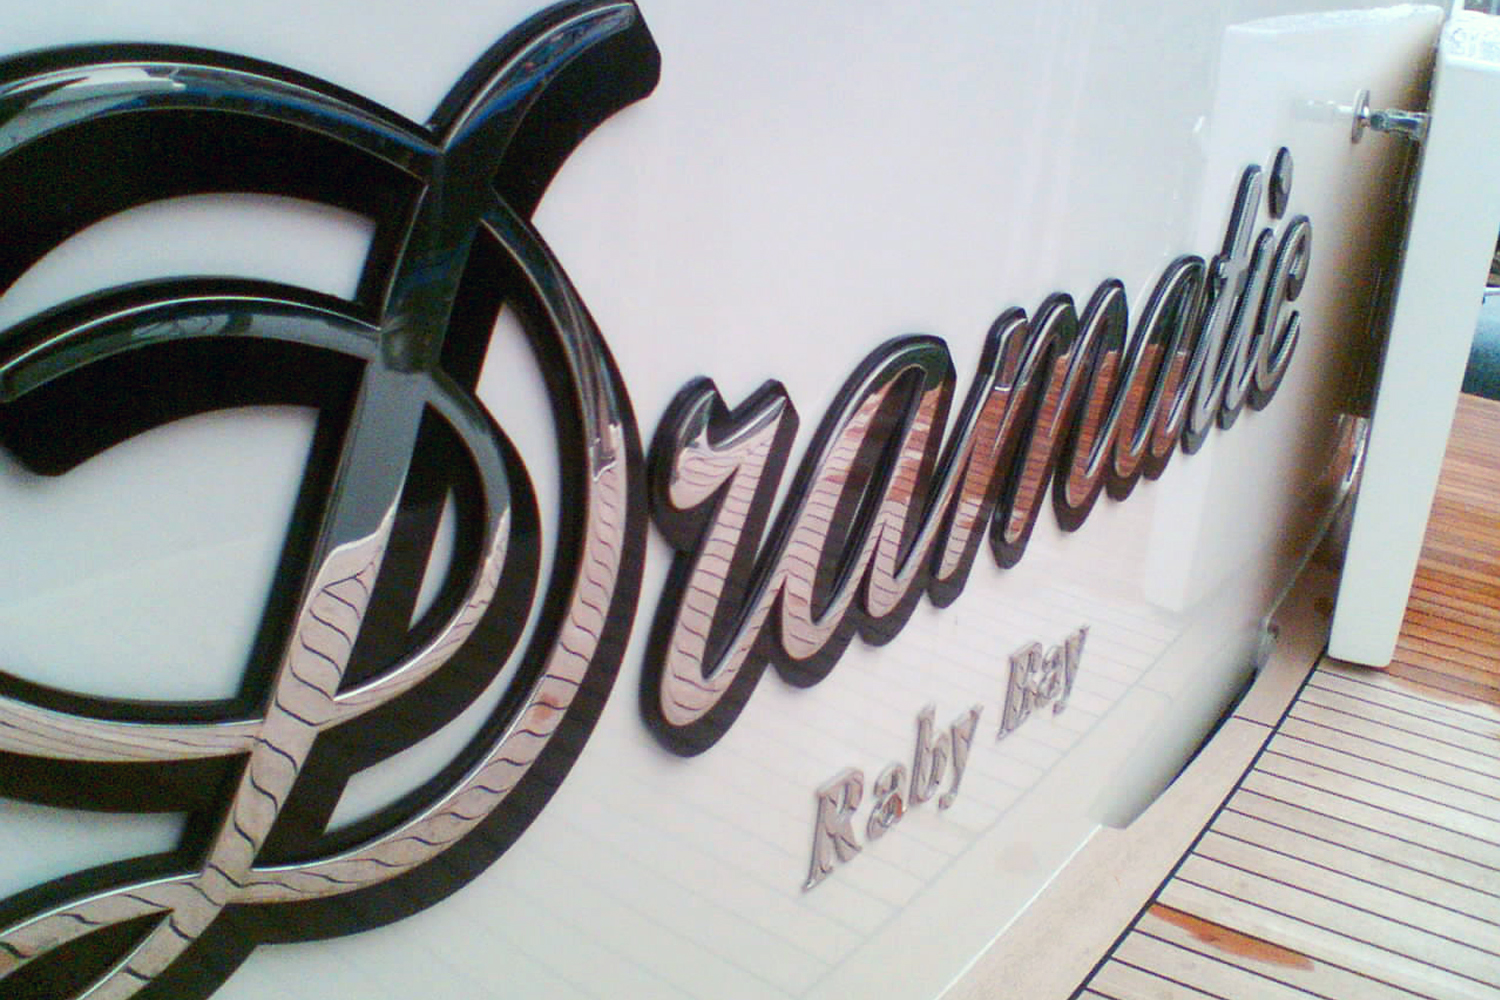 Stainless steel boat name and lettering